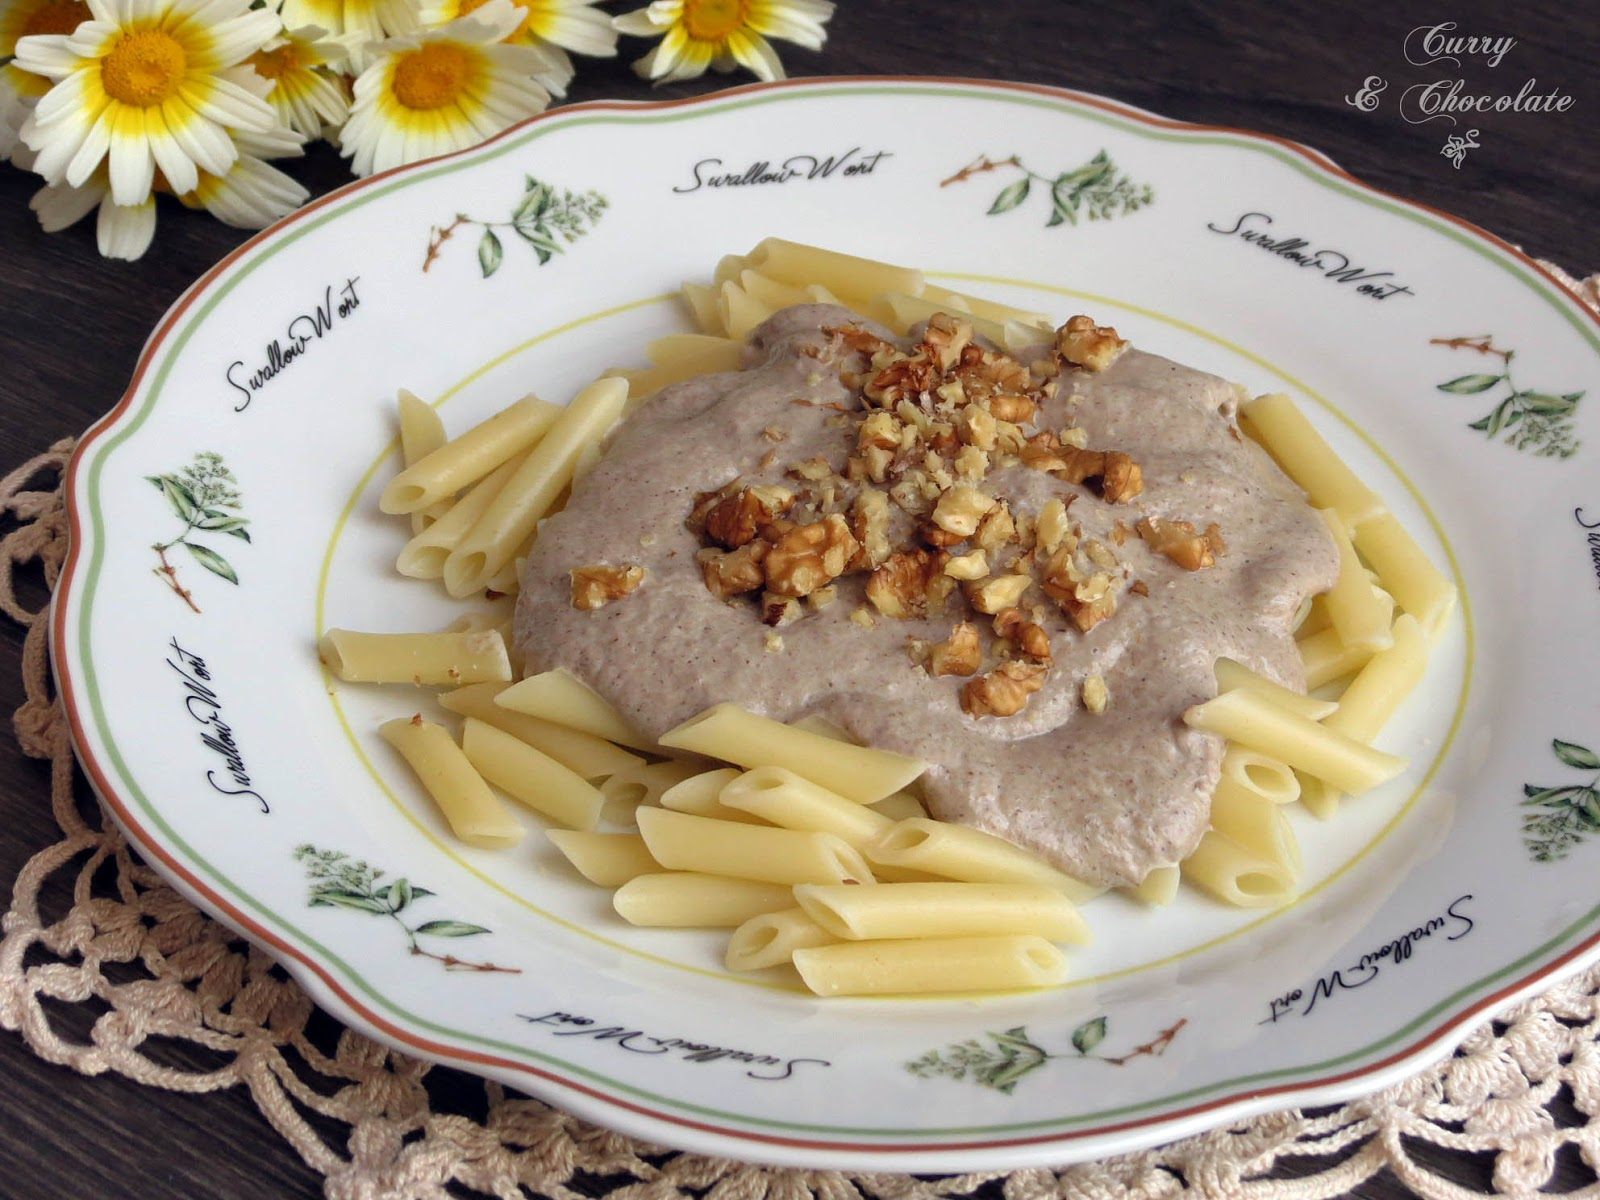 Pasta con crema de champiñones y nueces -  Pasta with mushroom cream sauce and walnuts